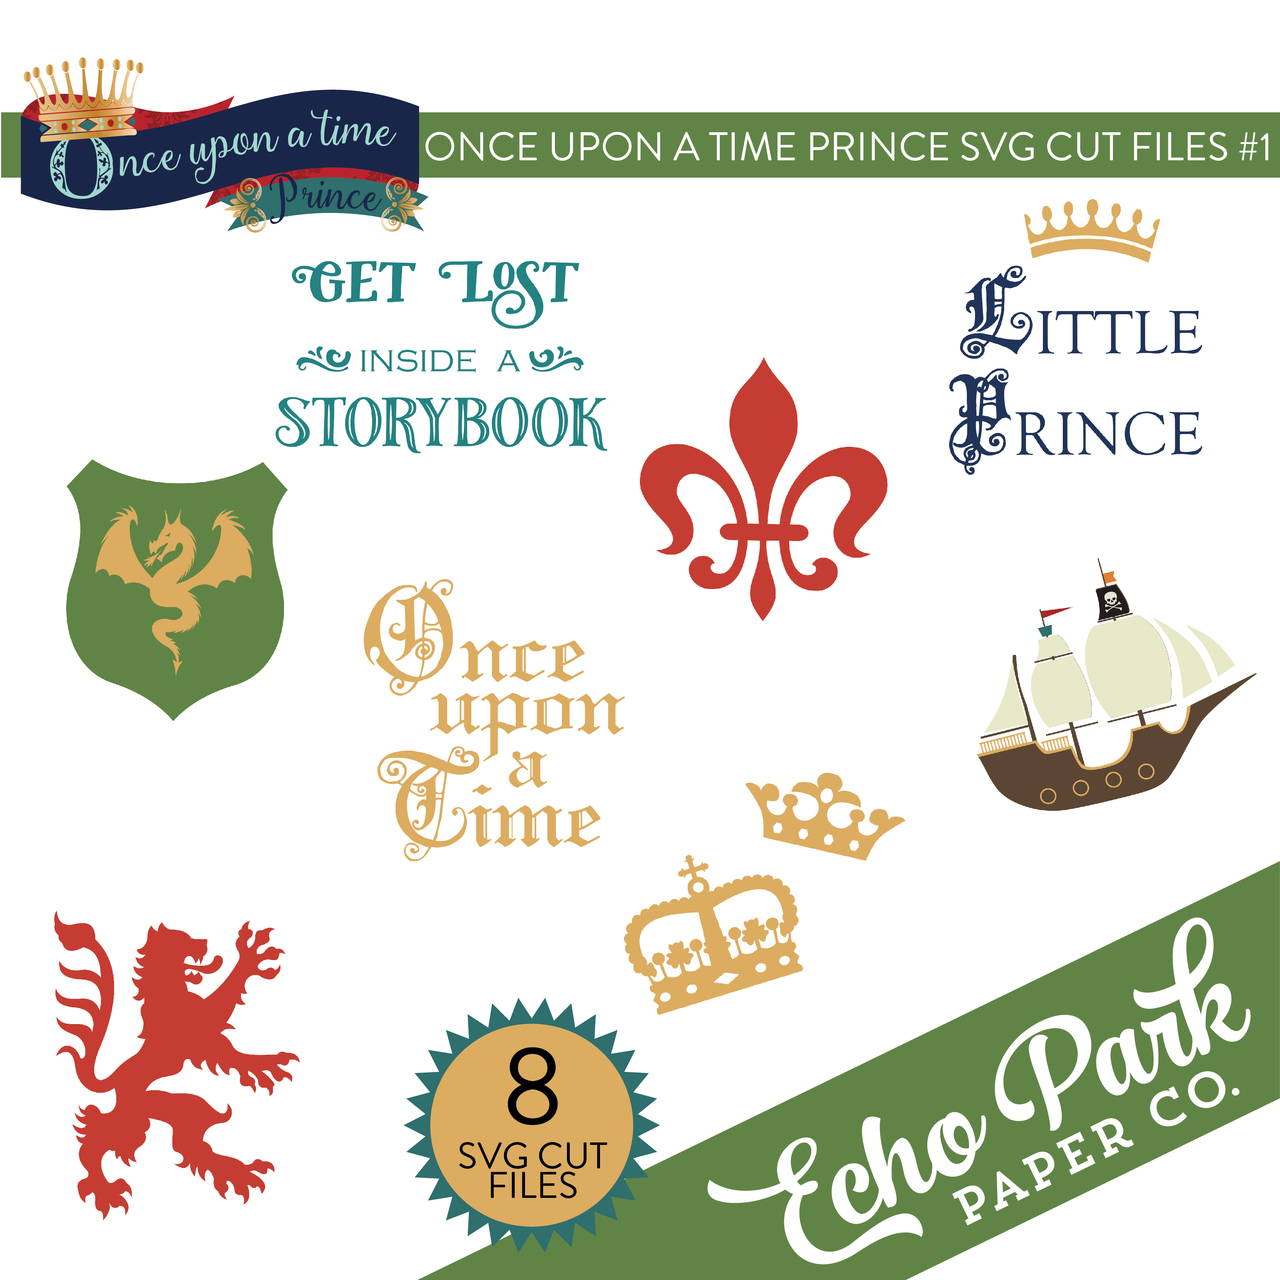 Once Upon A Time Prince SVG Cut Files #2